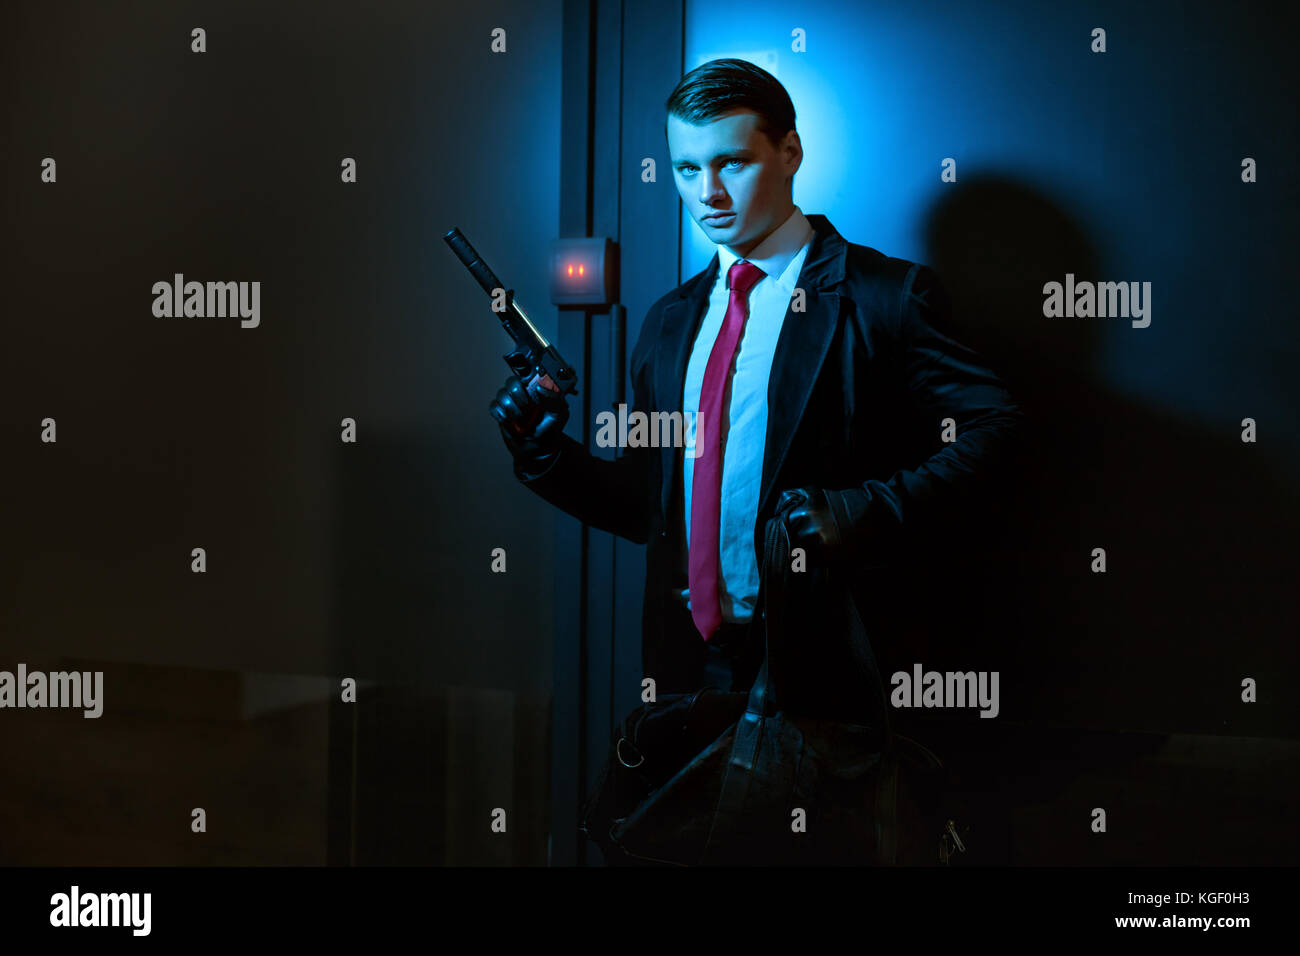 Man with a profession is a murderer, in his hand a pistol with a silencer. - Stock Image